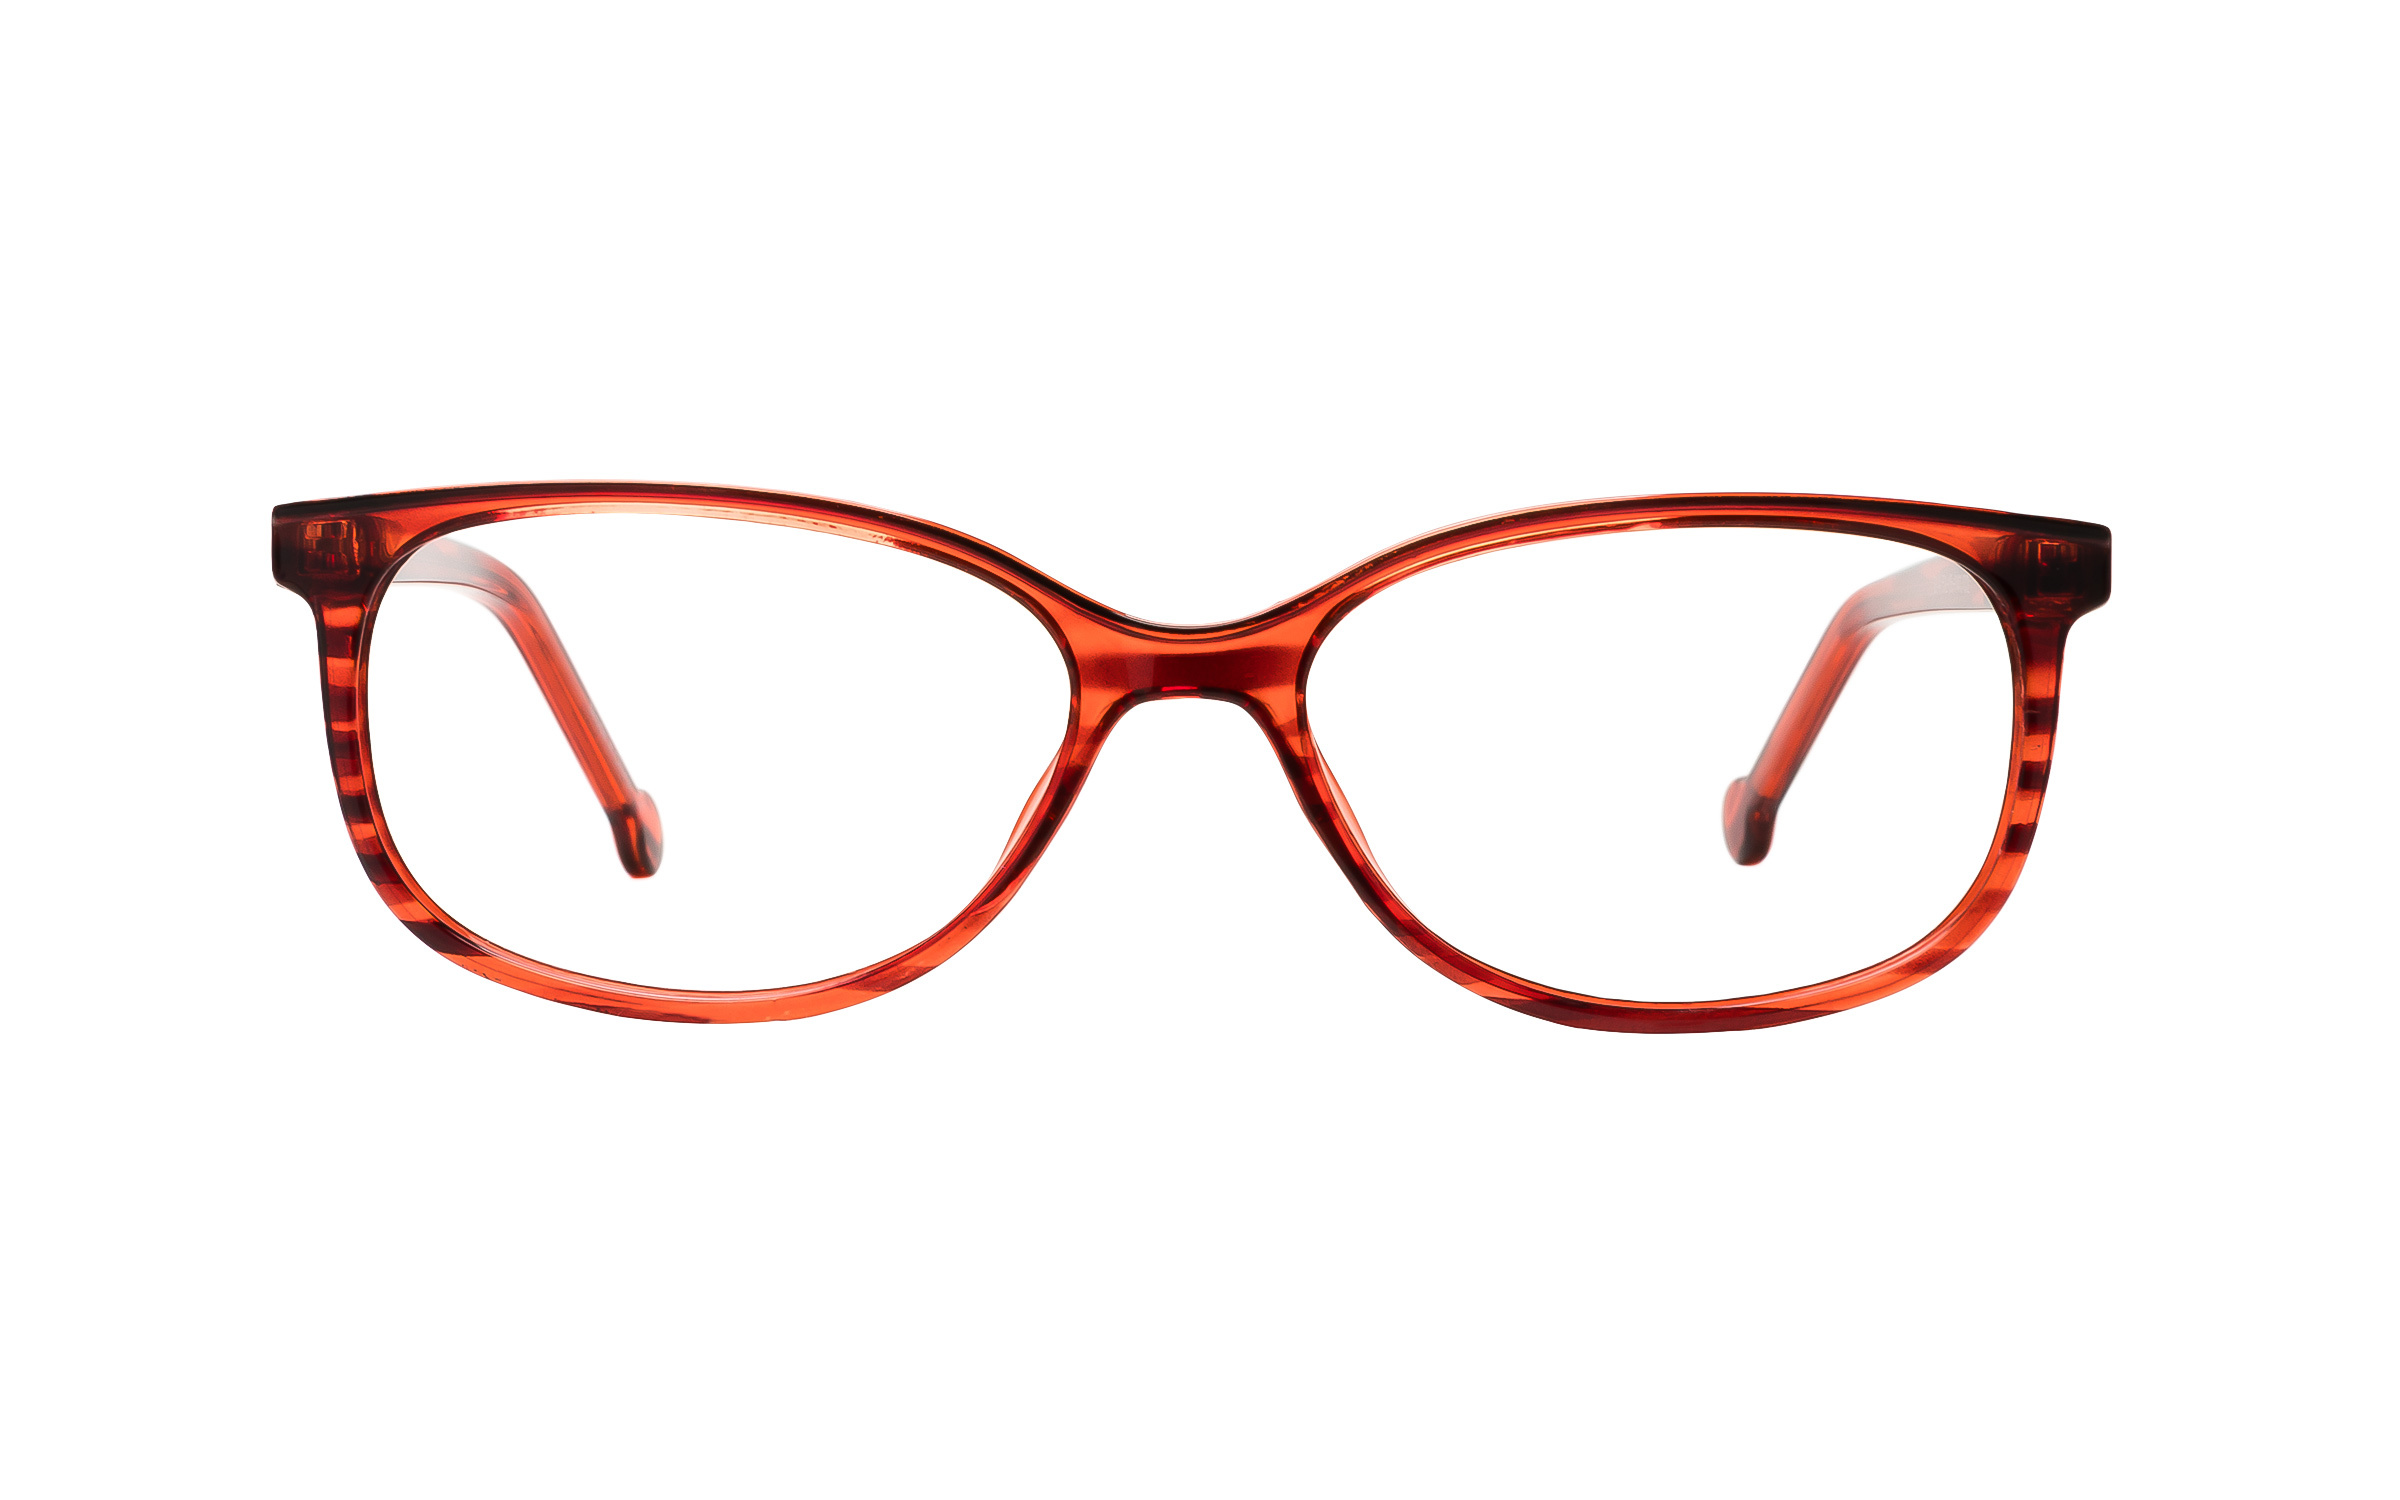 Clearly Basics S14 C2 (52) Eyeglasses and Frame in Red - Online Coastal